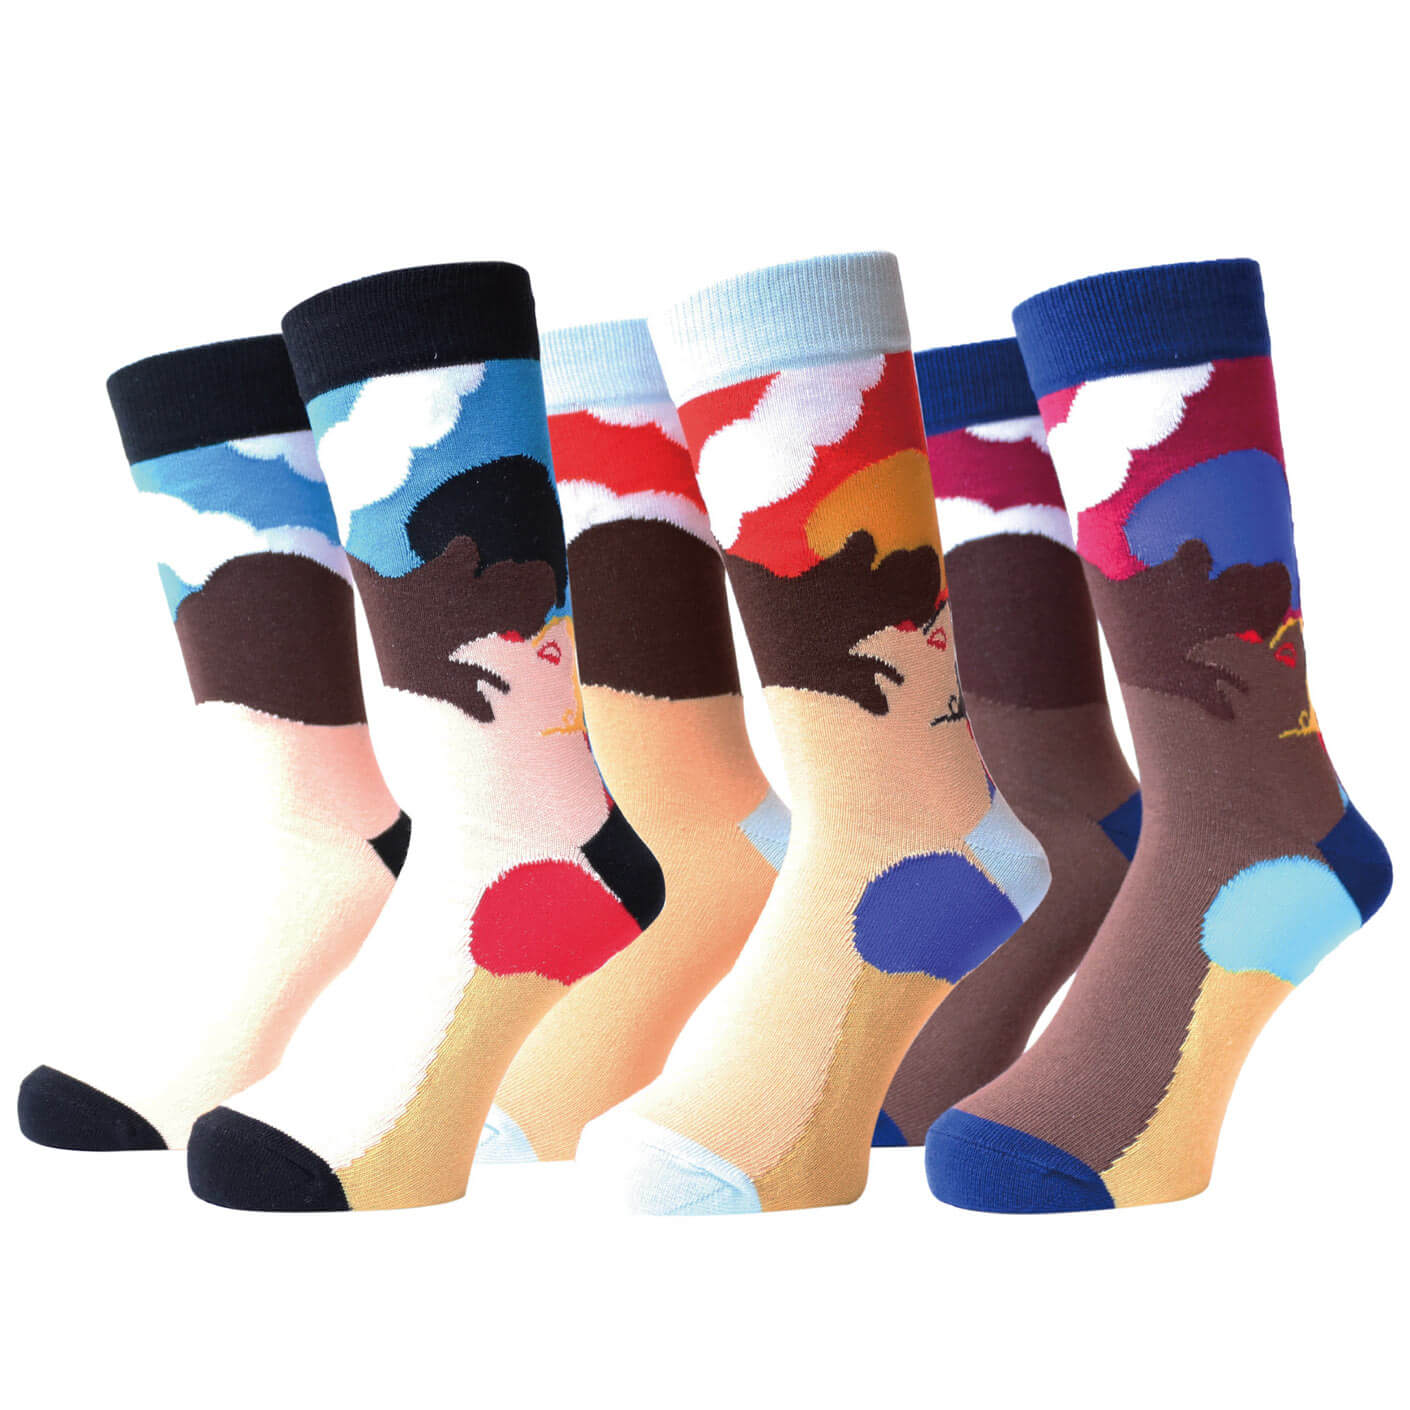 AFTERNOON DELIGHT SOCKS